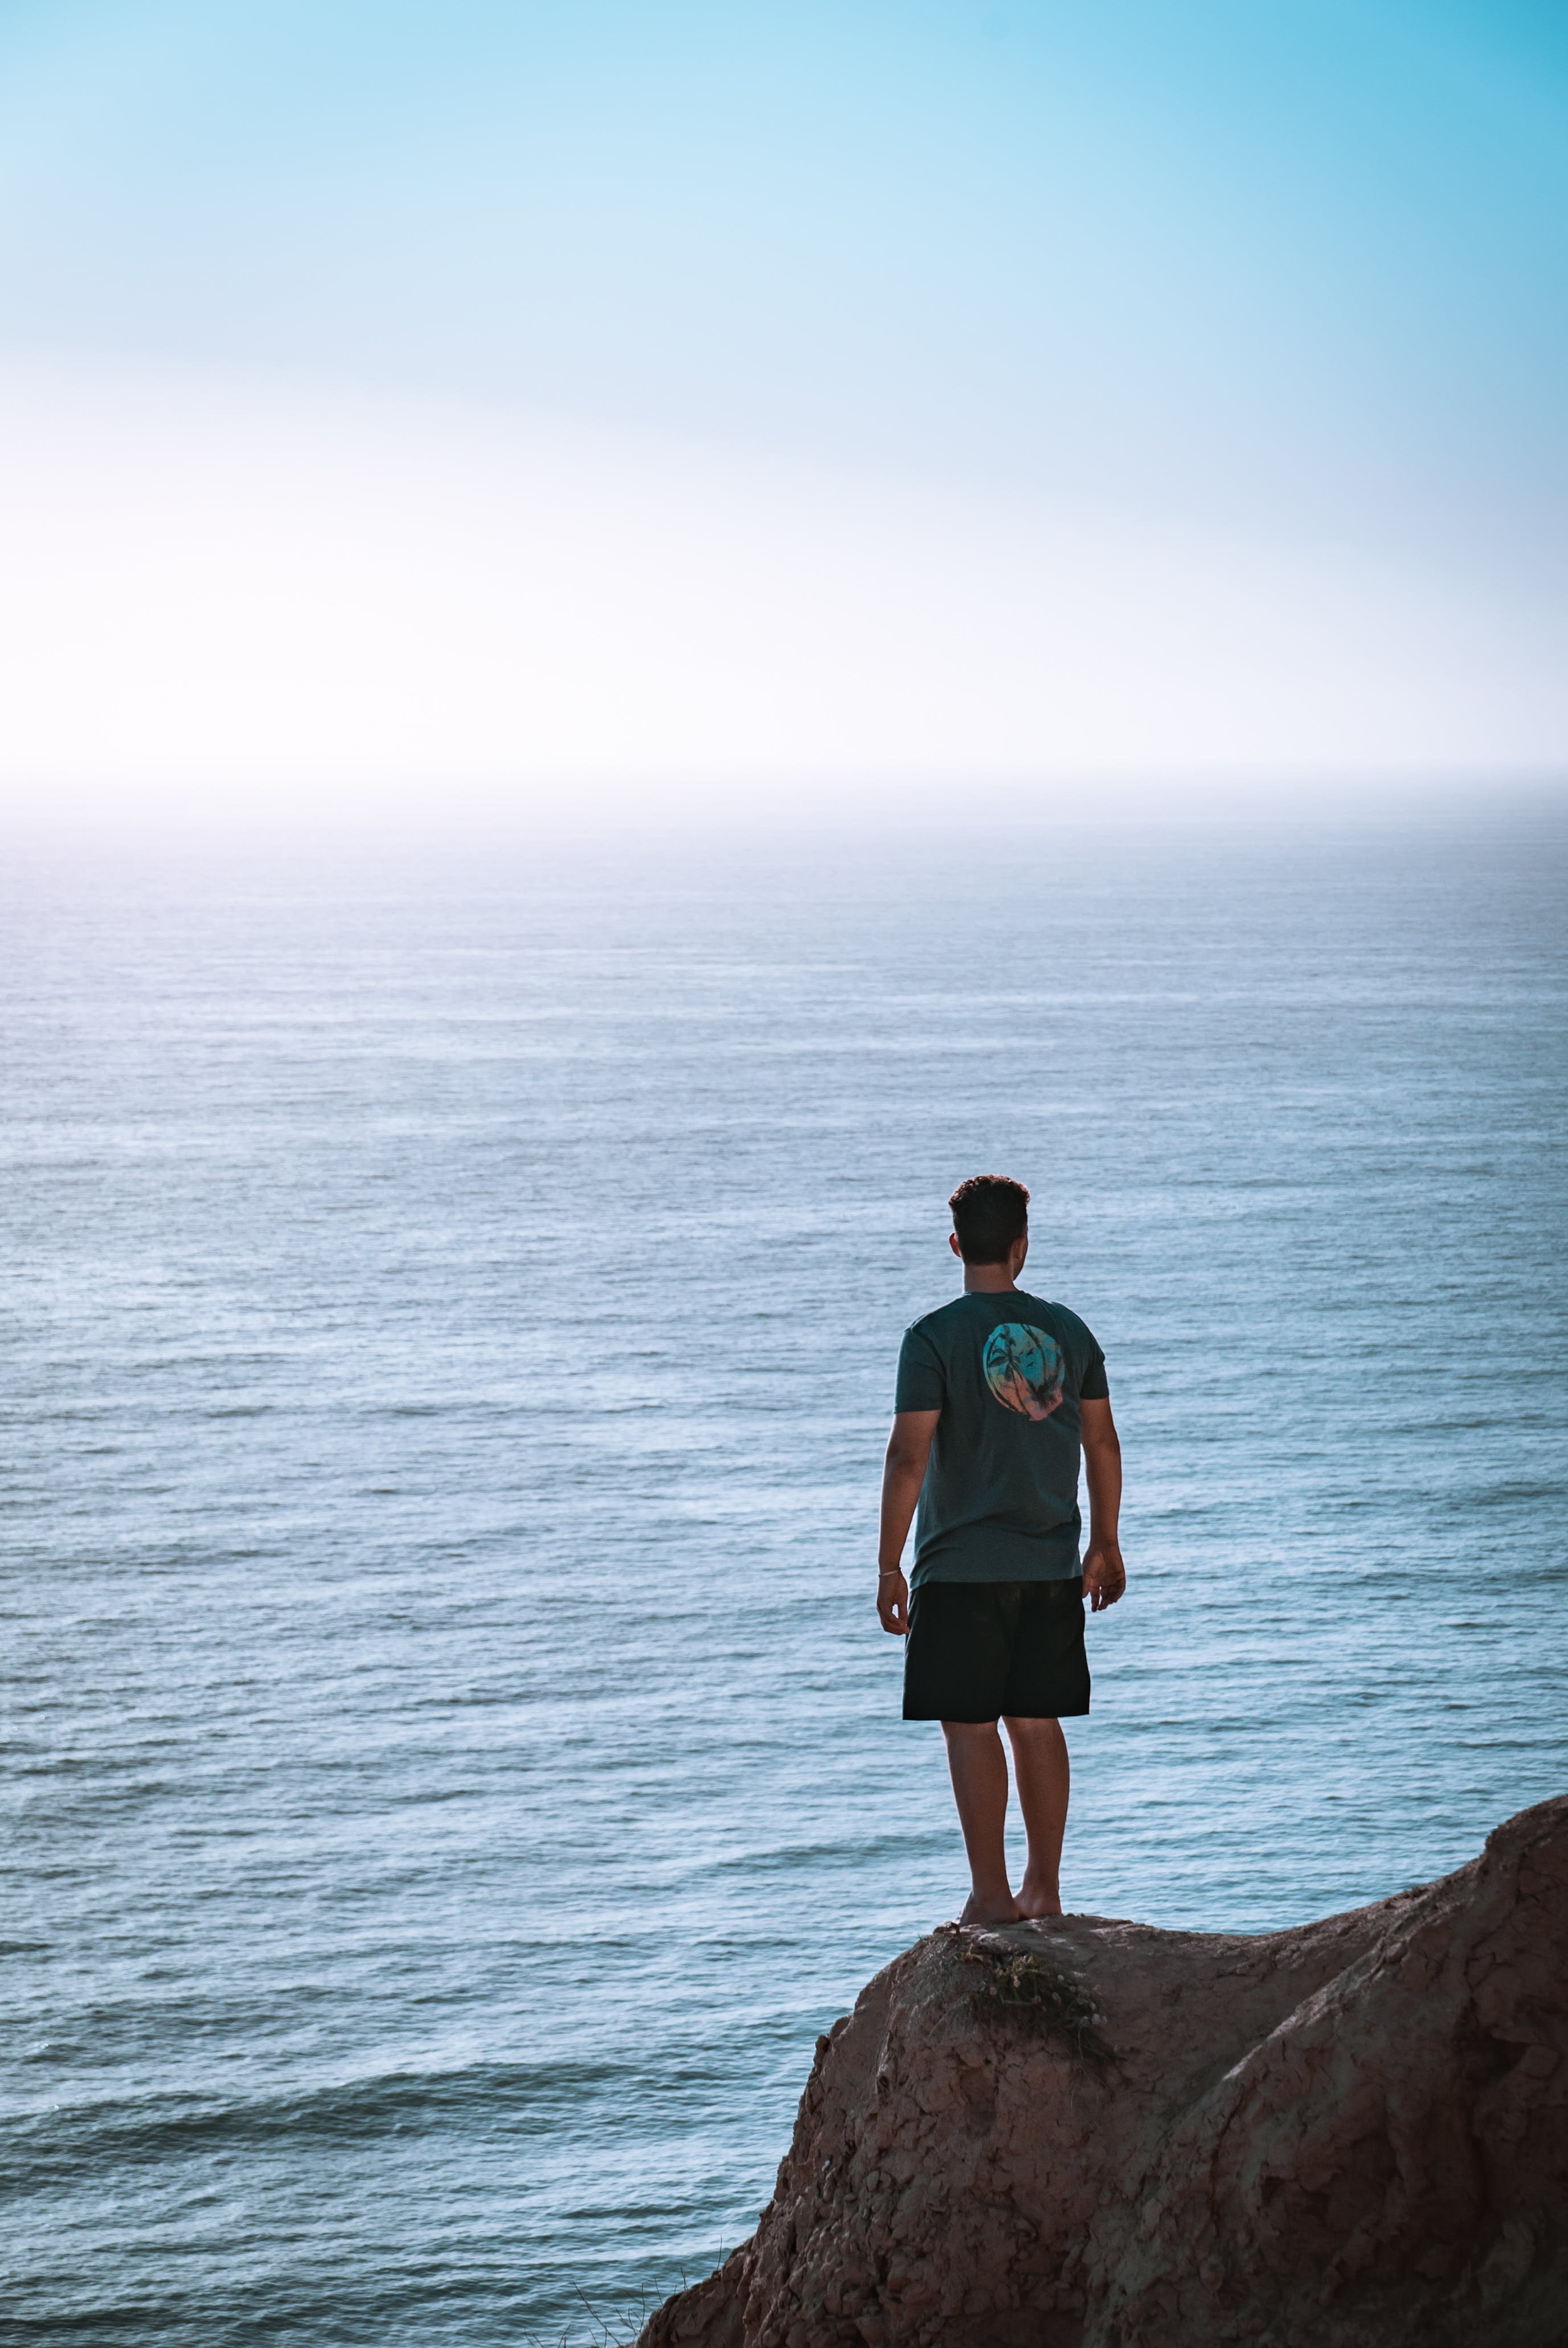 Man Standing on Cliff Near Sea